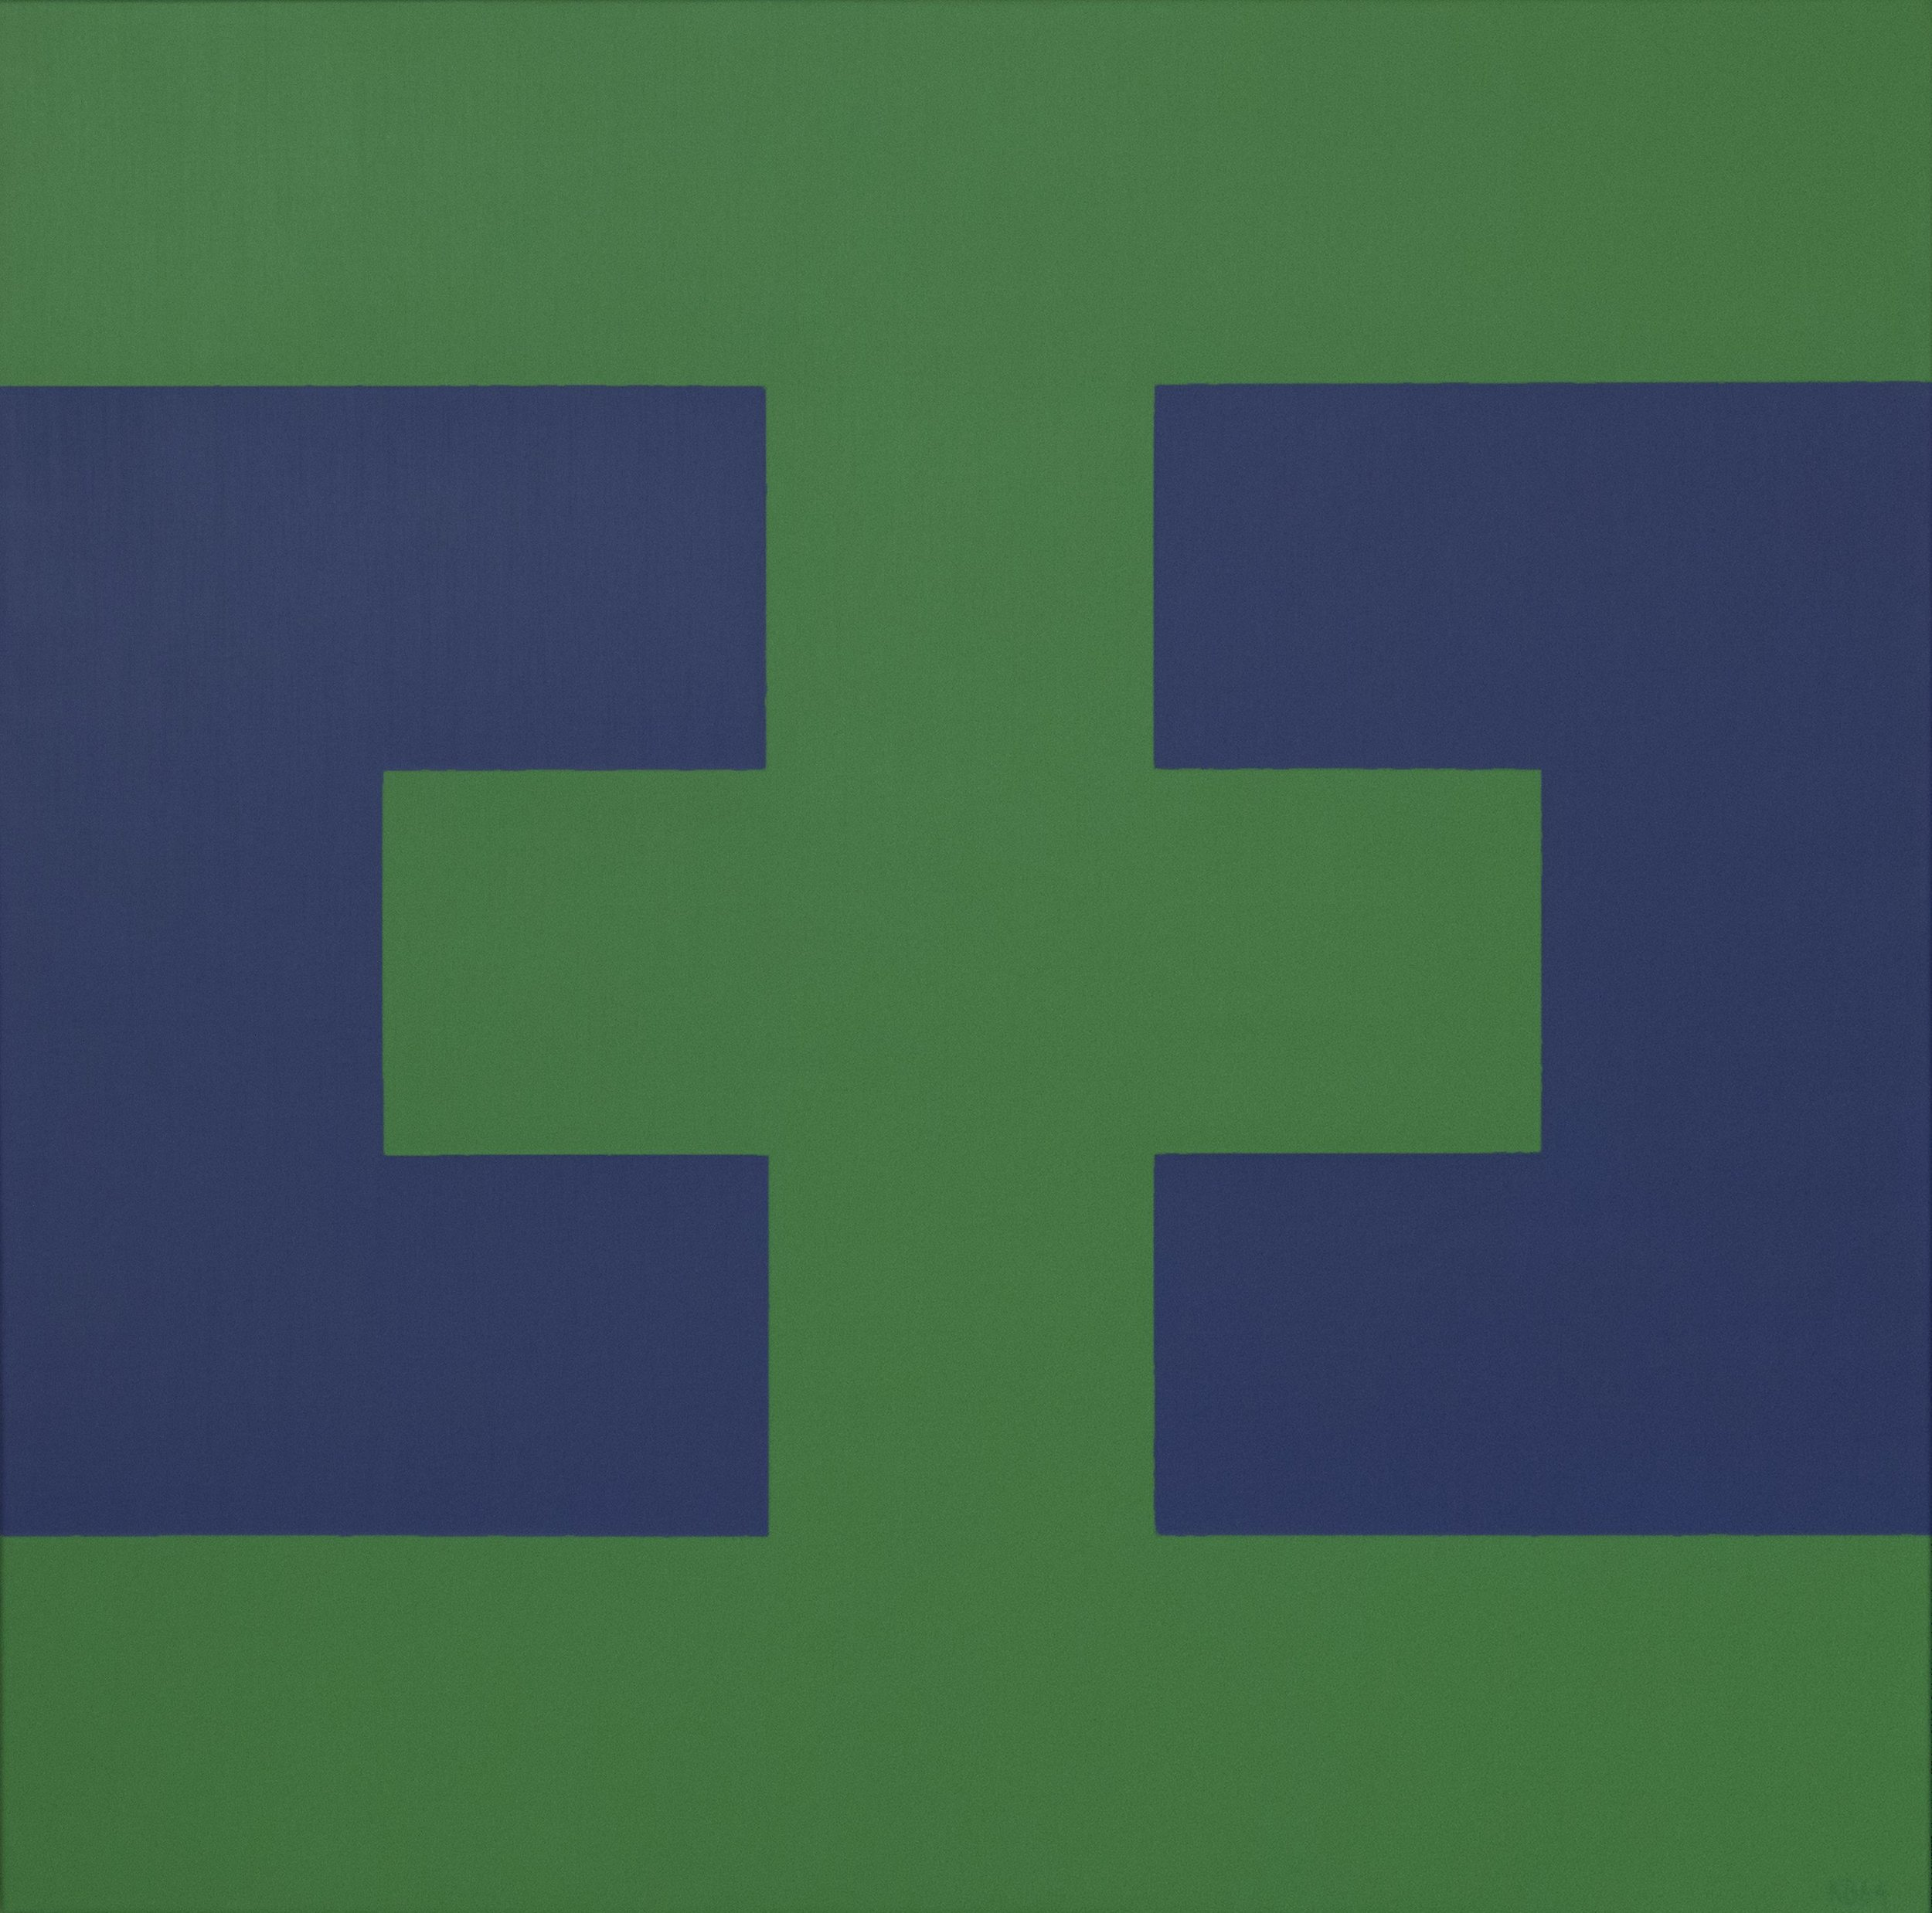 #32 , 1964  oil on canvas 42 x 42 inches; 106.7 x 106.7 centimeters